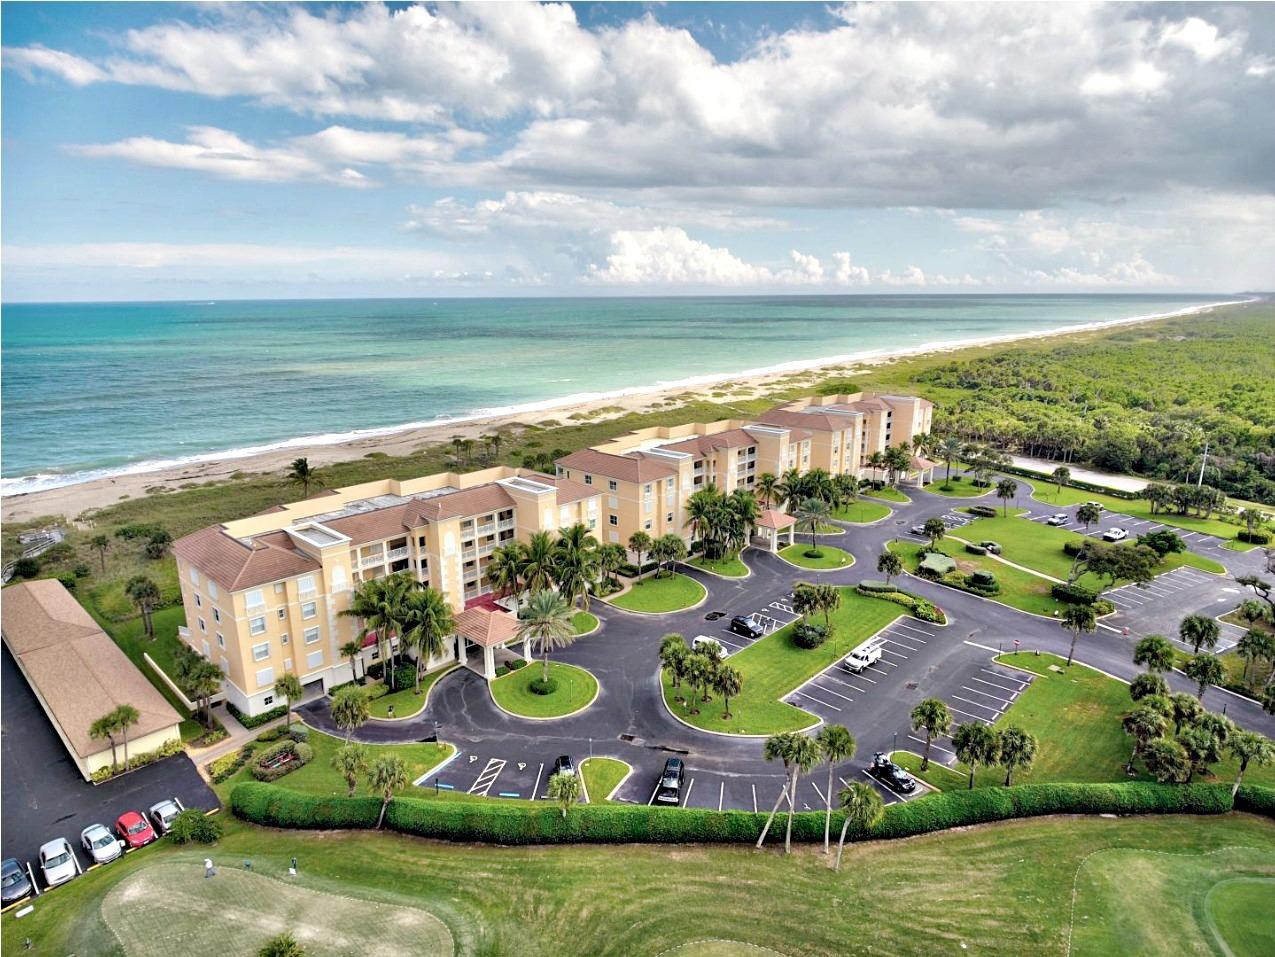 OCEAN VILLAGE FORT PIERCE